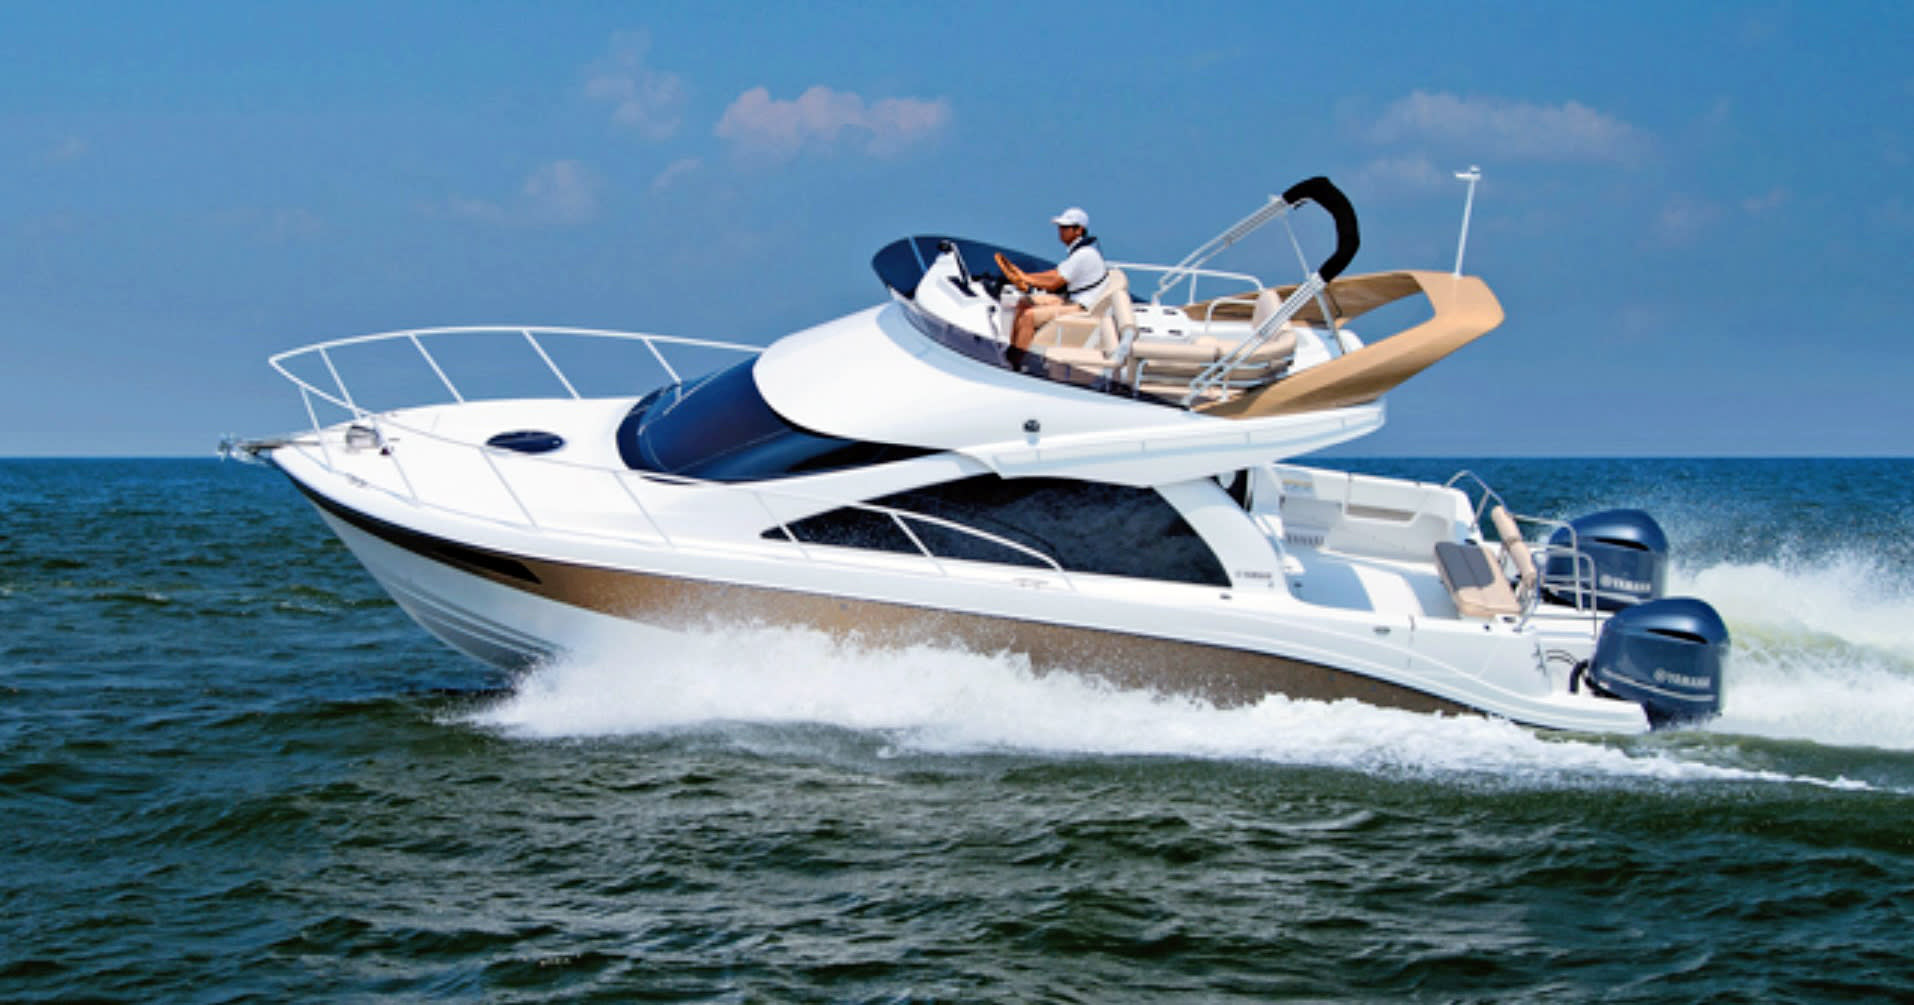 Yamaha technology leads new wave of motor boat development - Nikkei ...